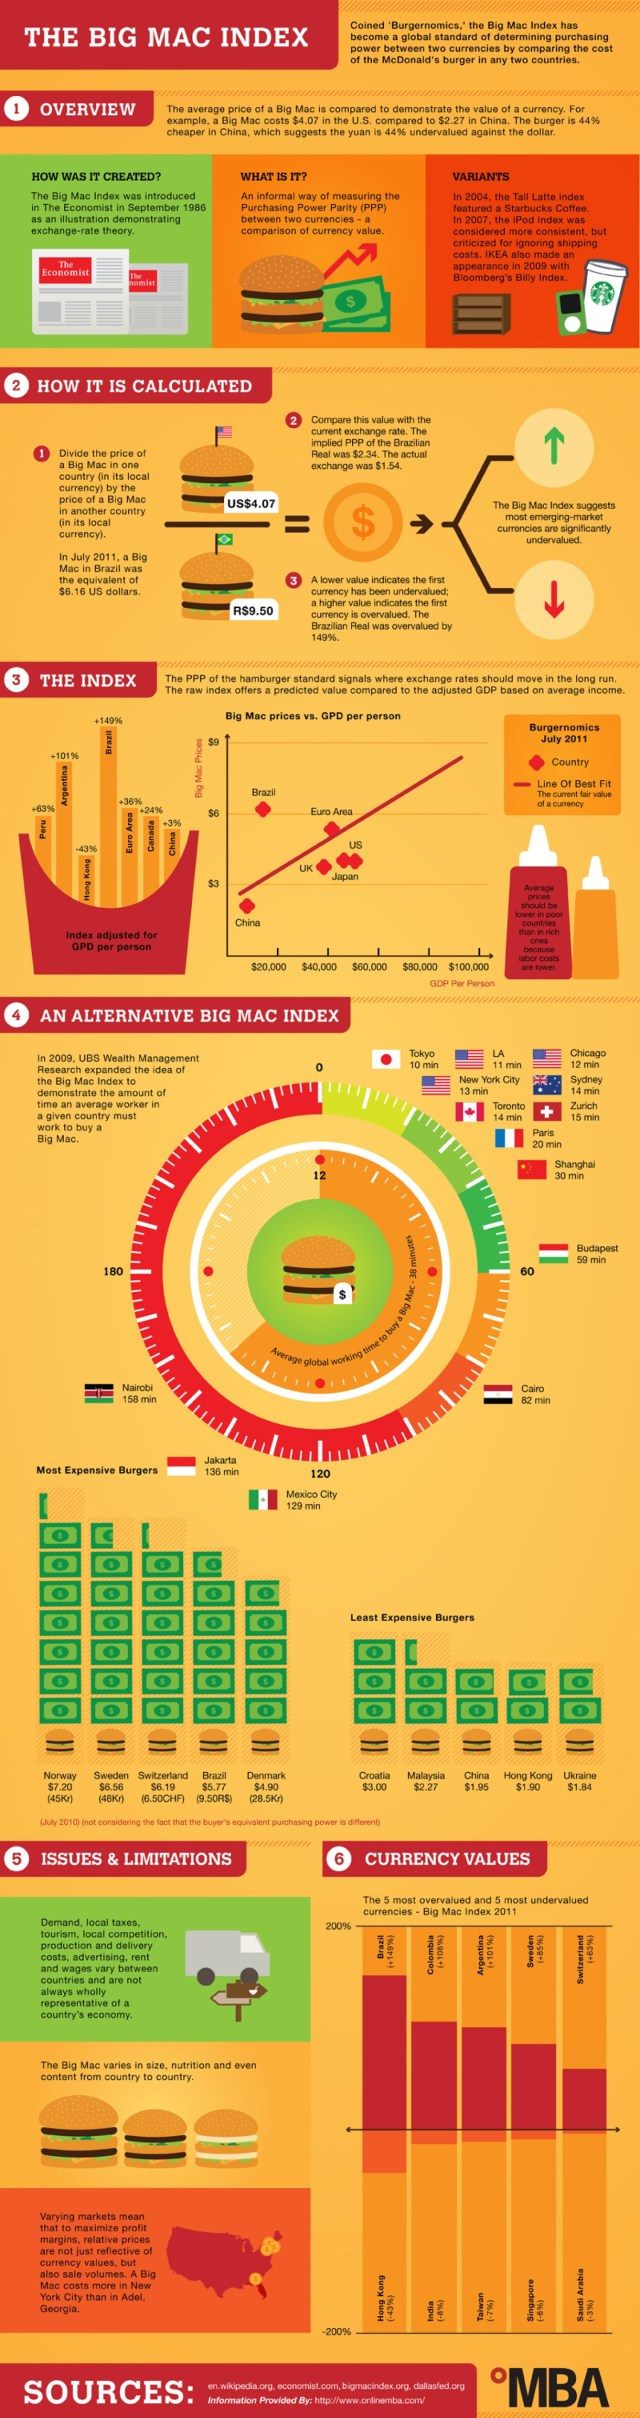 The Big Mac Index Infographic Guide